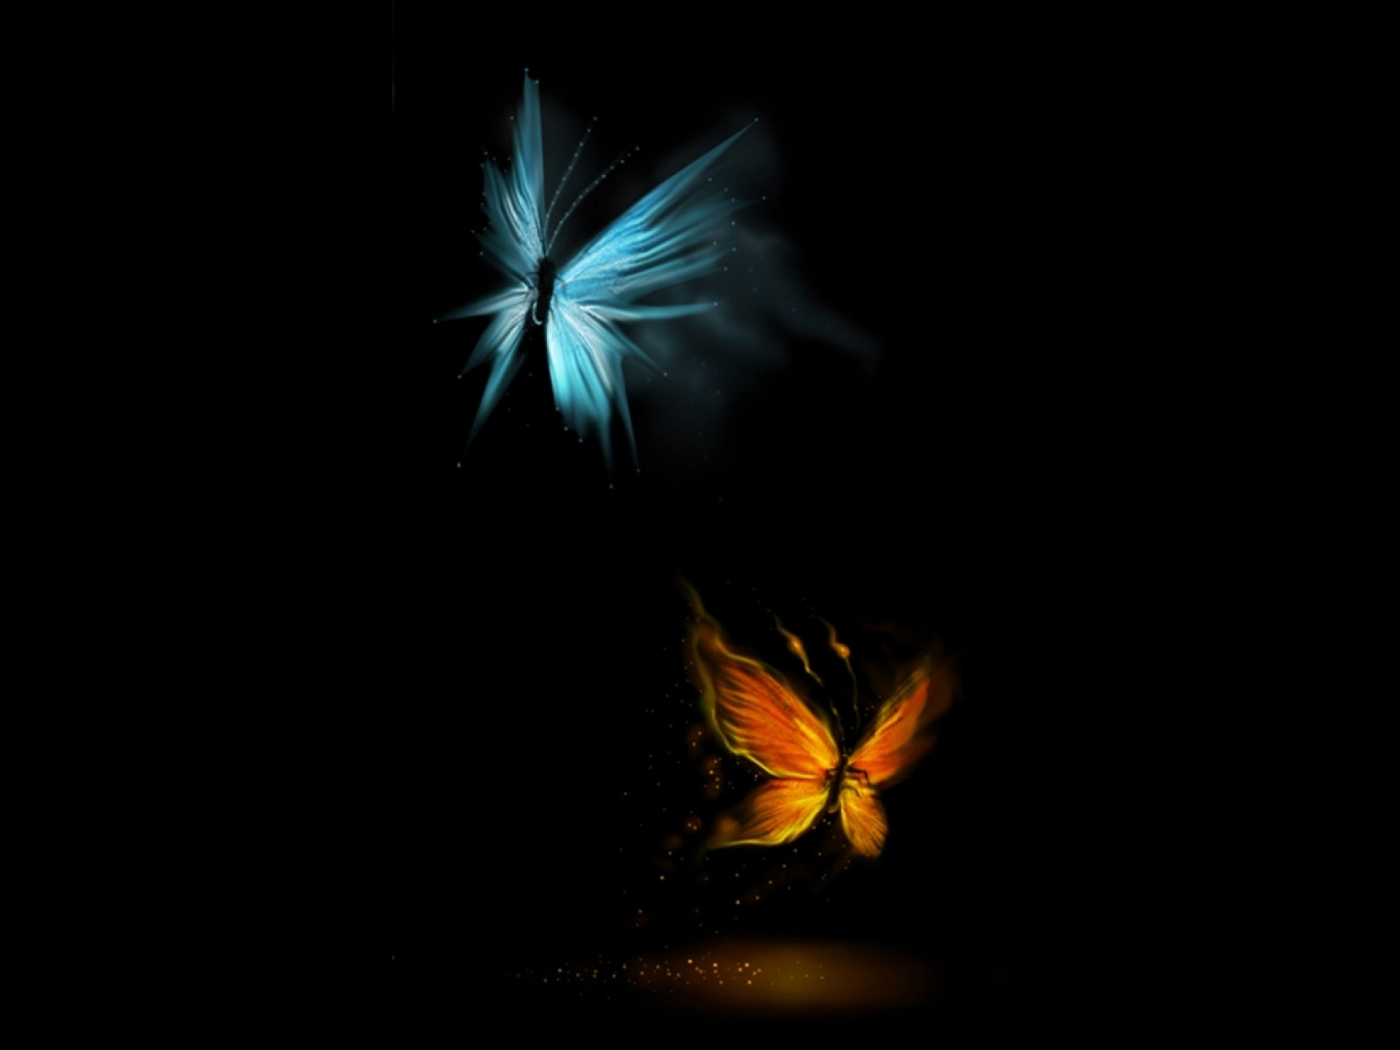 31521 download wallpaper Butterflies, Insects, Pictures screensavers and pictures for free